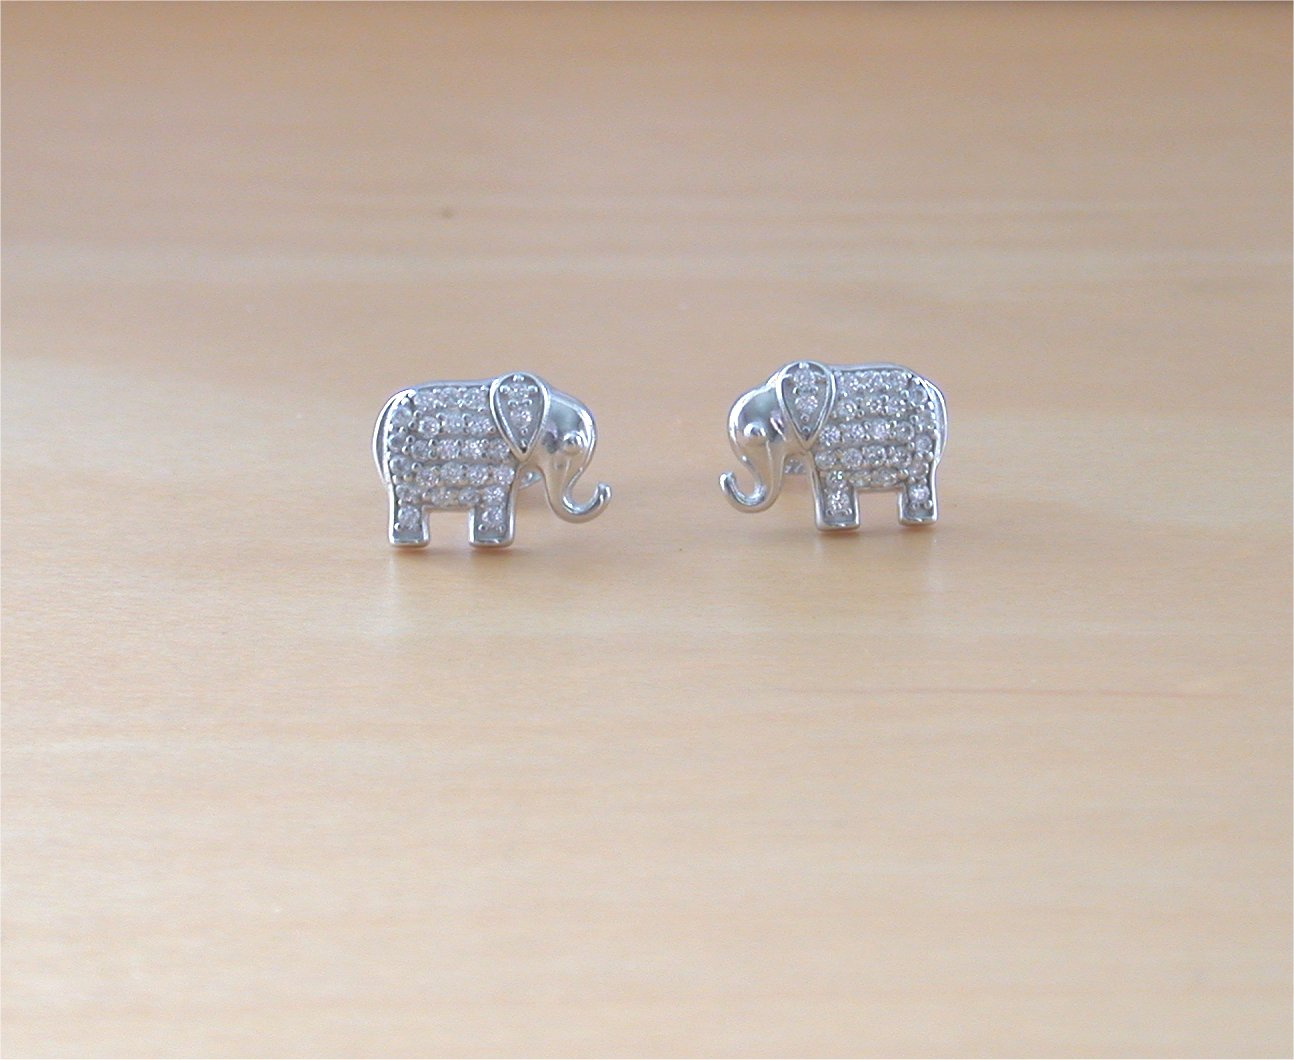 gifts wedding elephant from sterling party silver earrings cute friendship in earring stud kids long item jewelry animal tail charm women